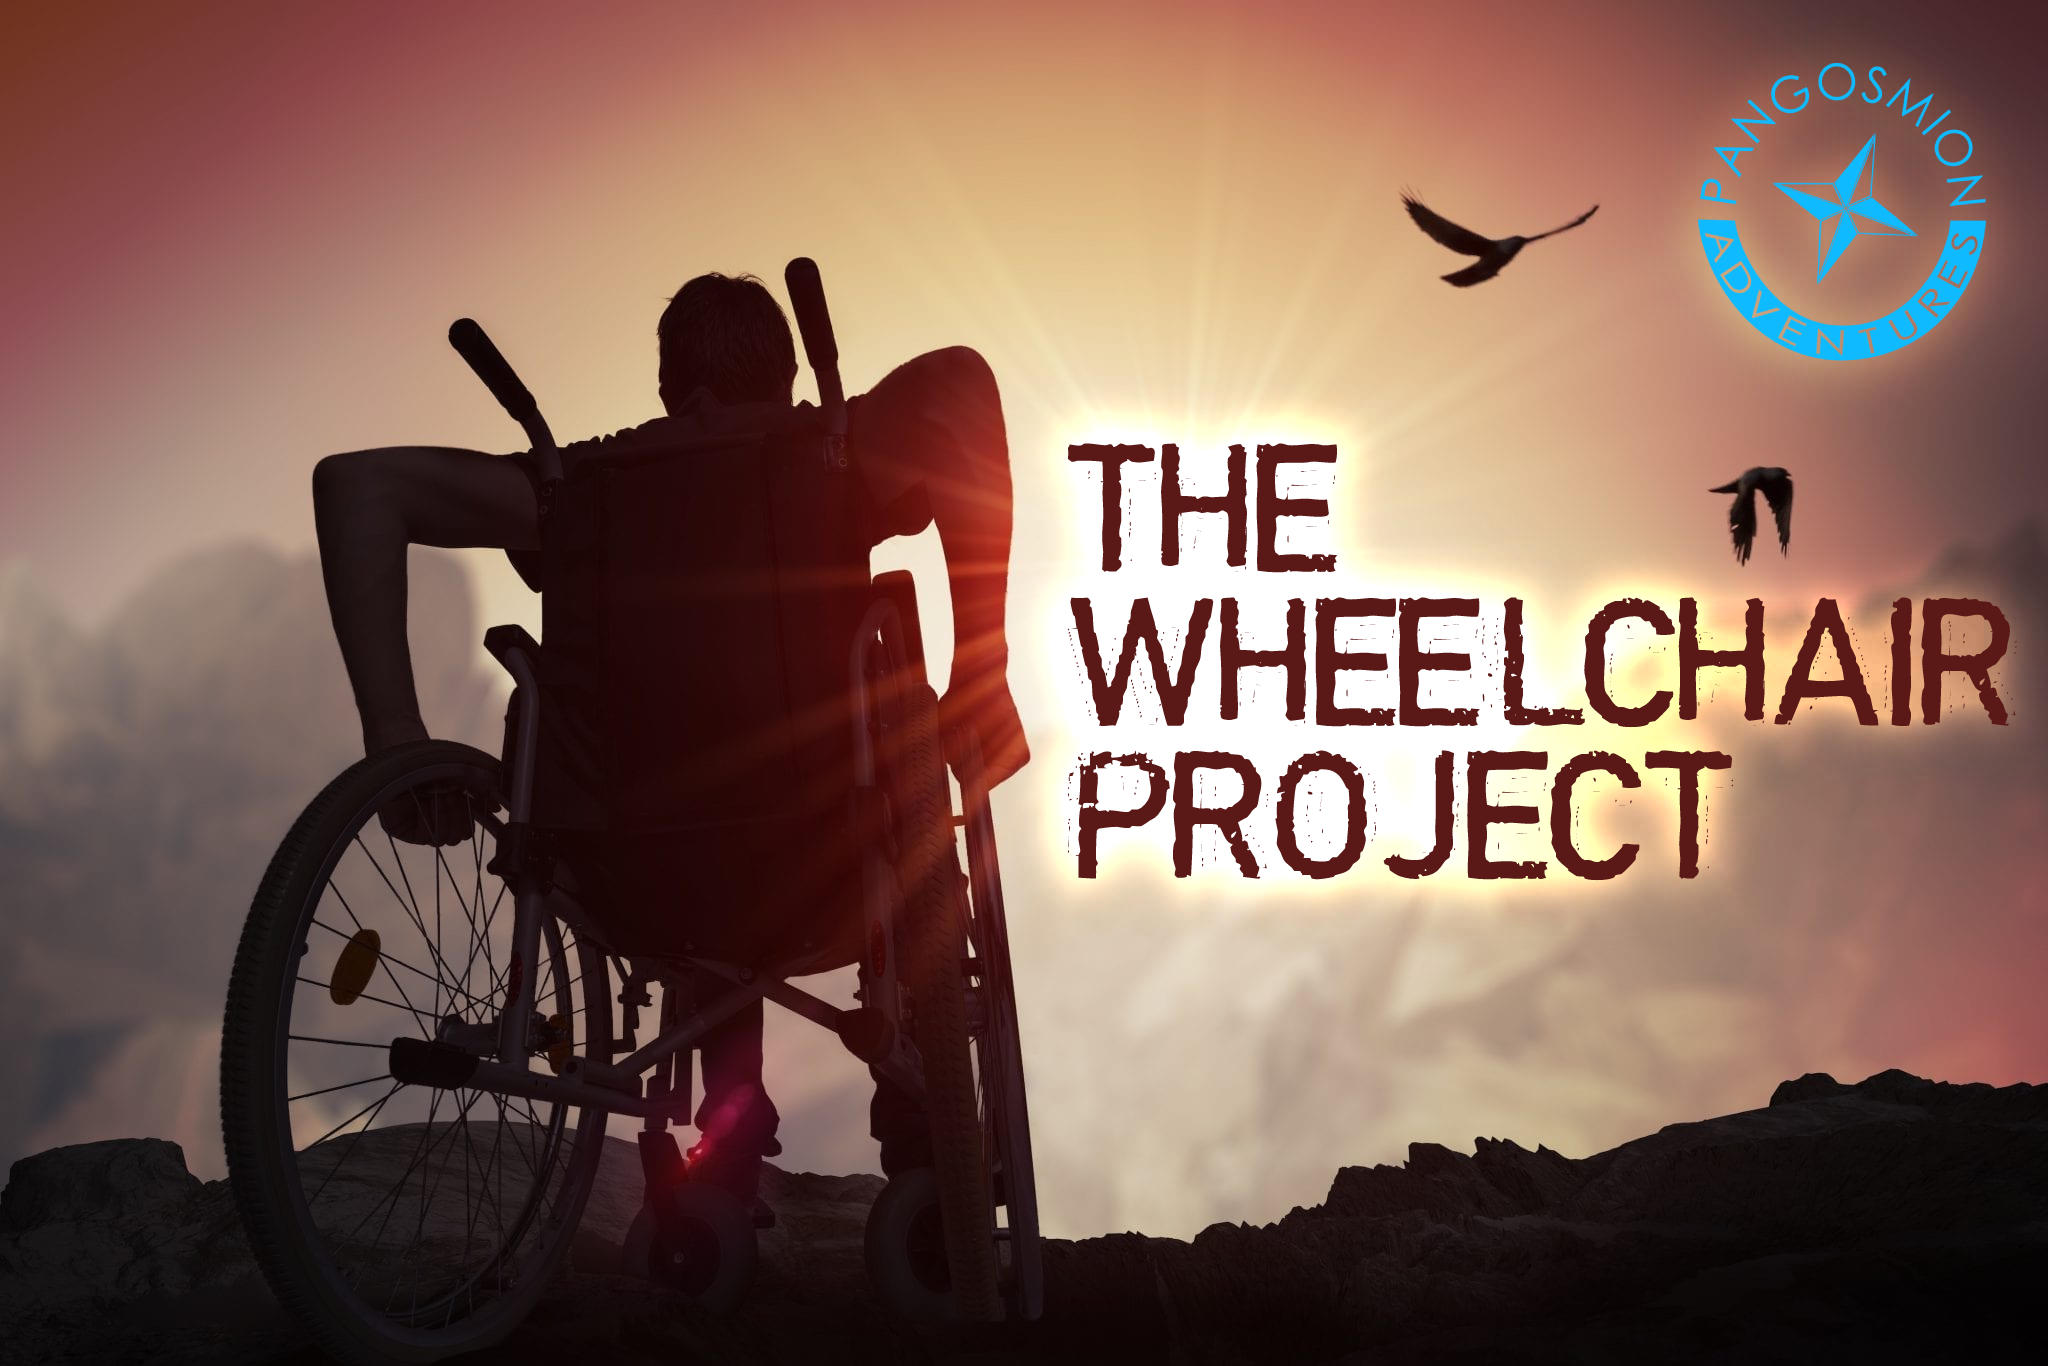 The Wheelchair Project